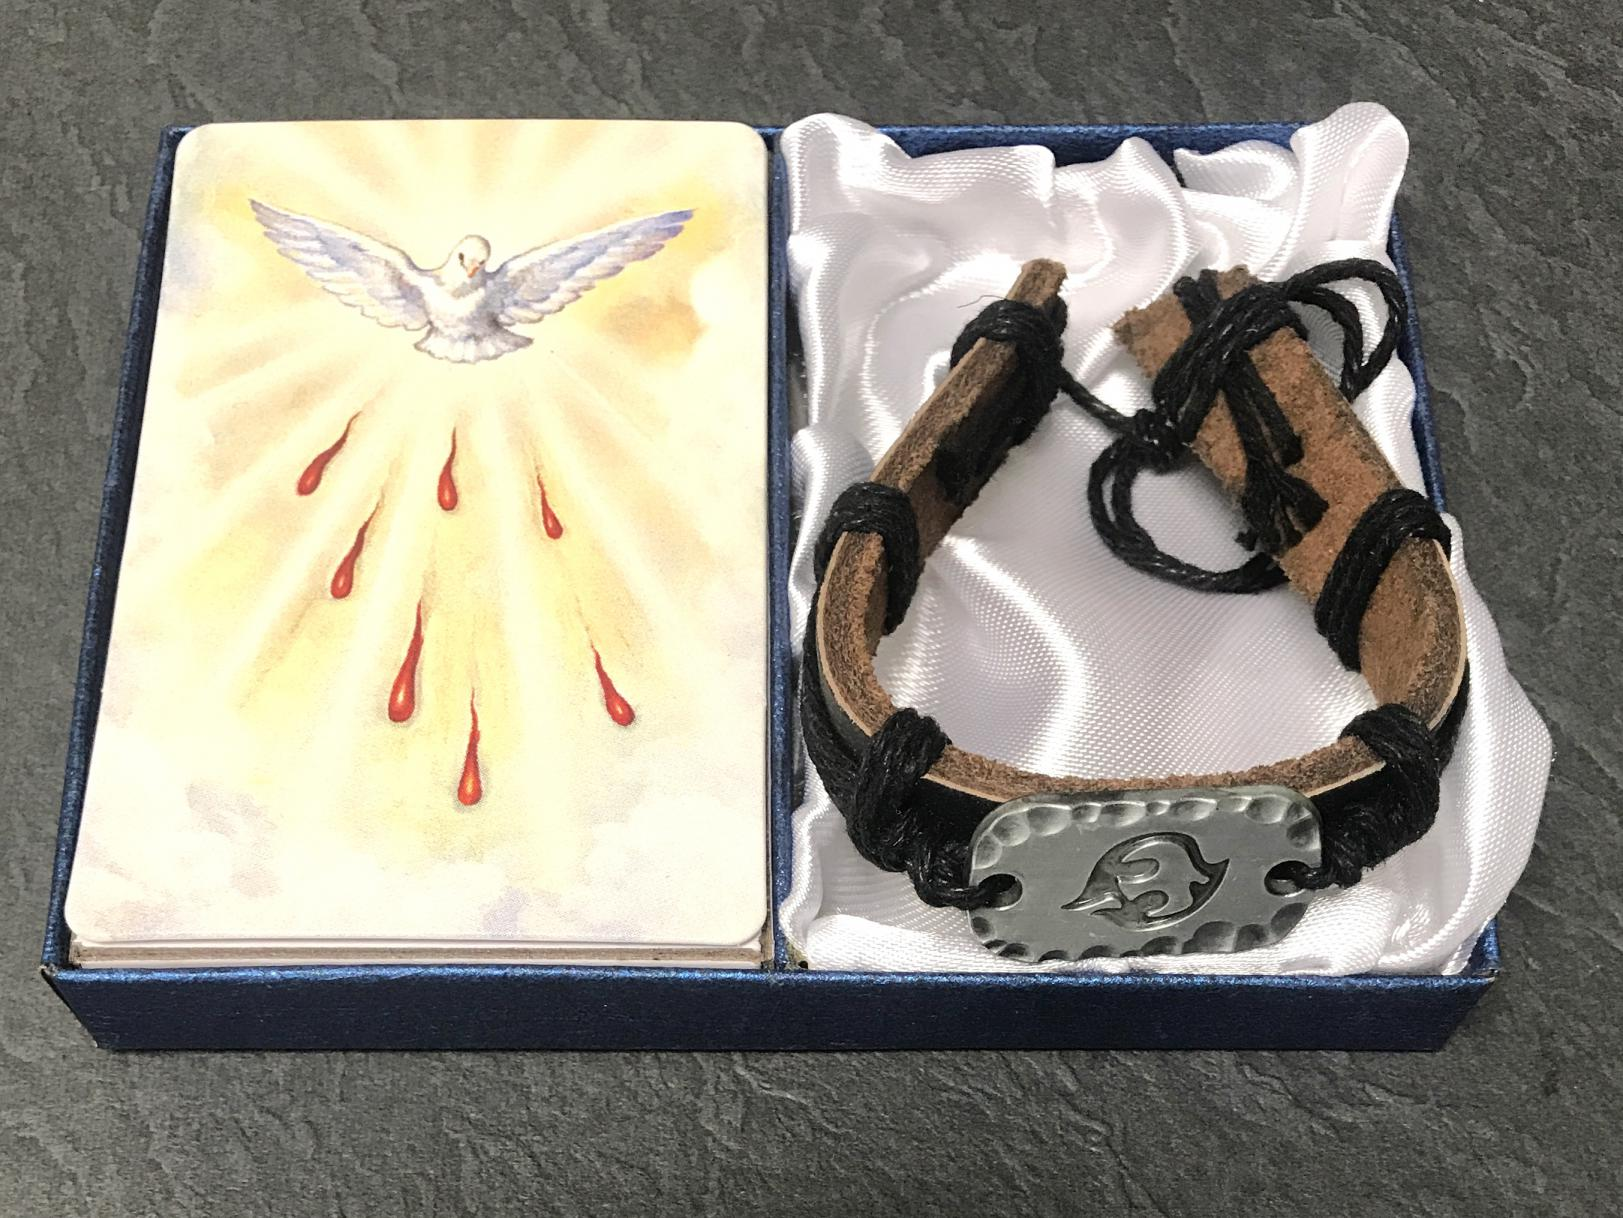 LEATHER CONFIRMATION BRACELET  AND PRAYER CARD GIFT BOXED